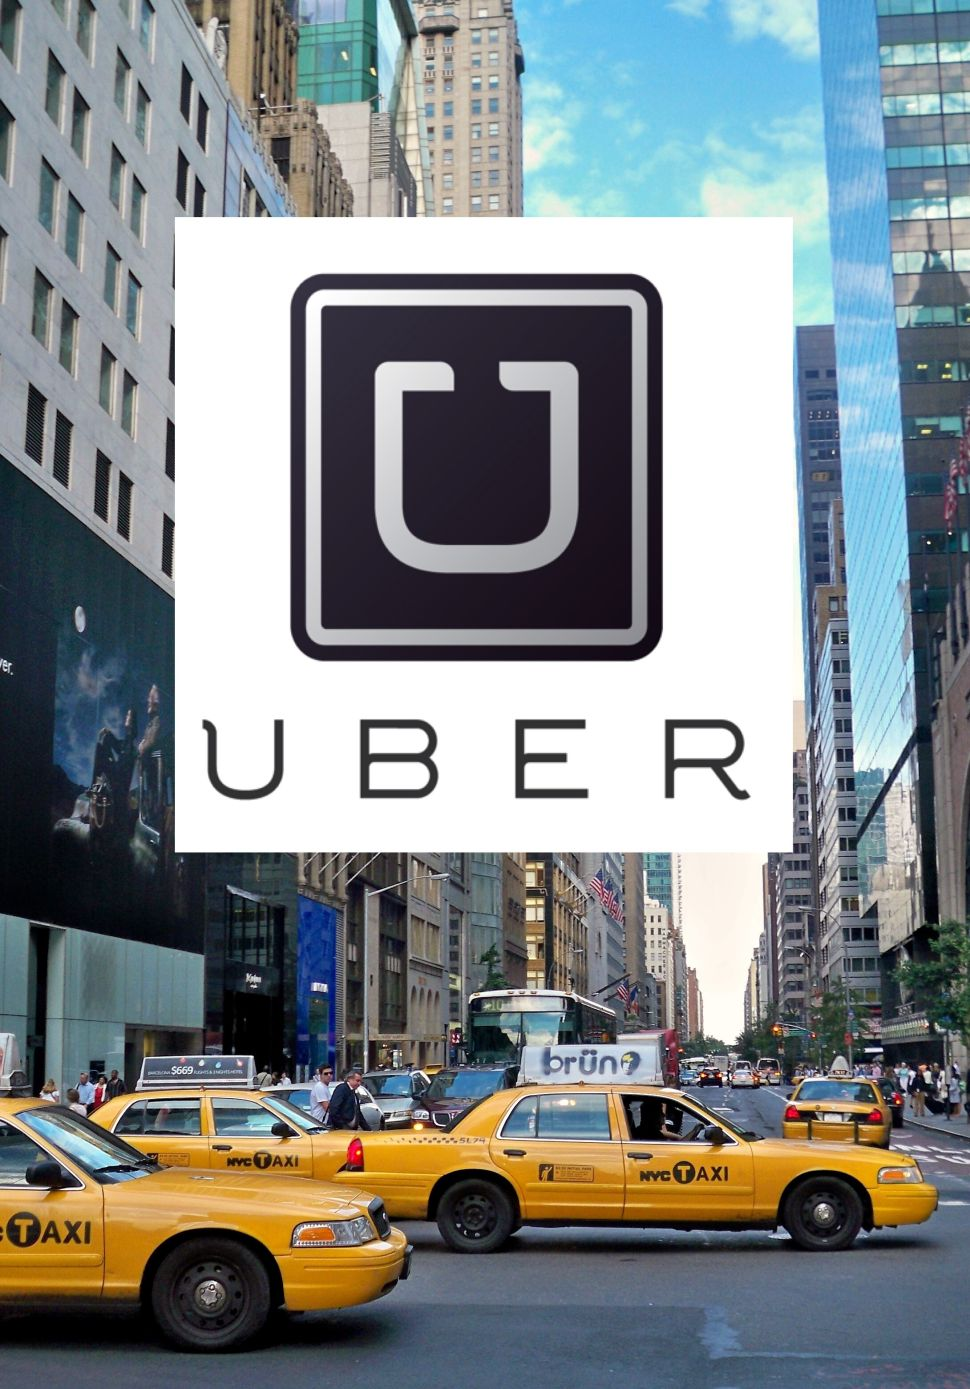 Uber Sued for Consumer Fraud and Unlawful Practices by Chicago Taxi and Limo Companies